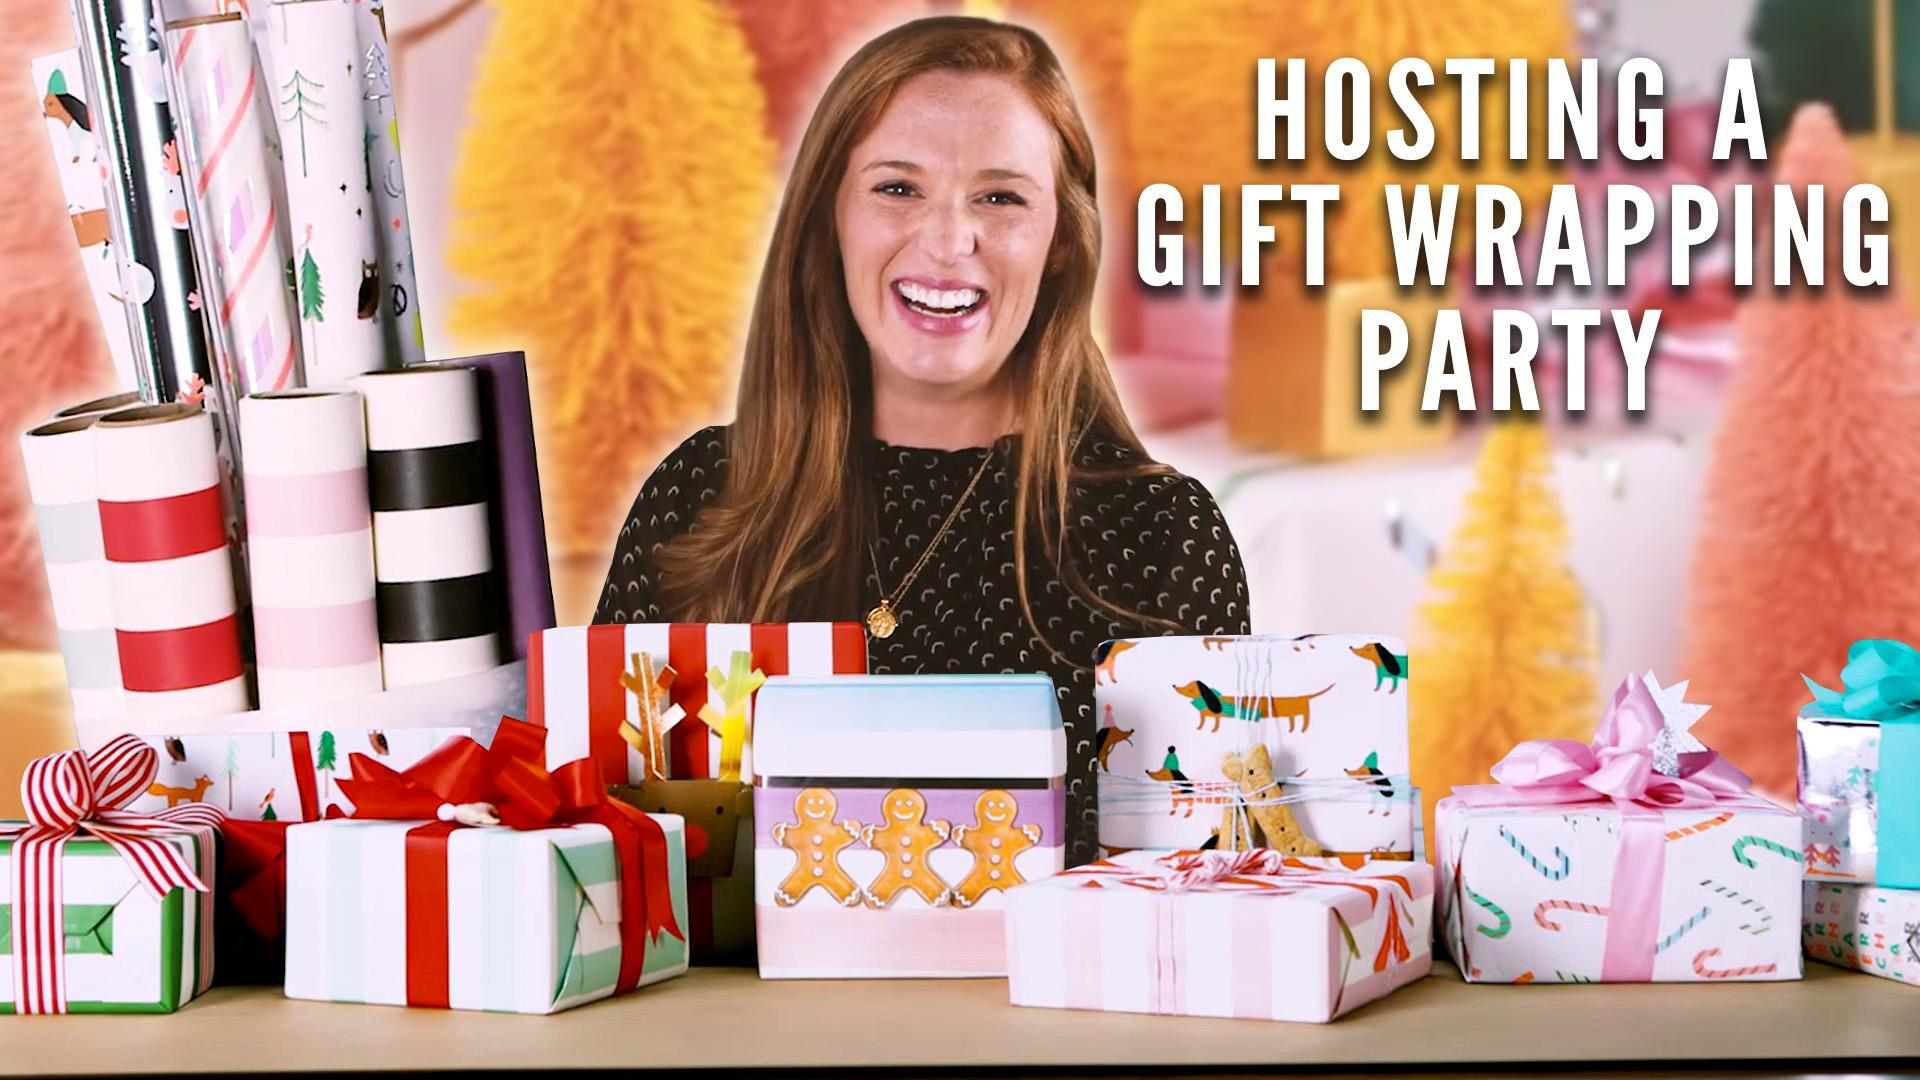 How to Host a Festive Gift Wrapping Party